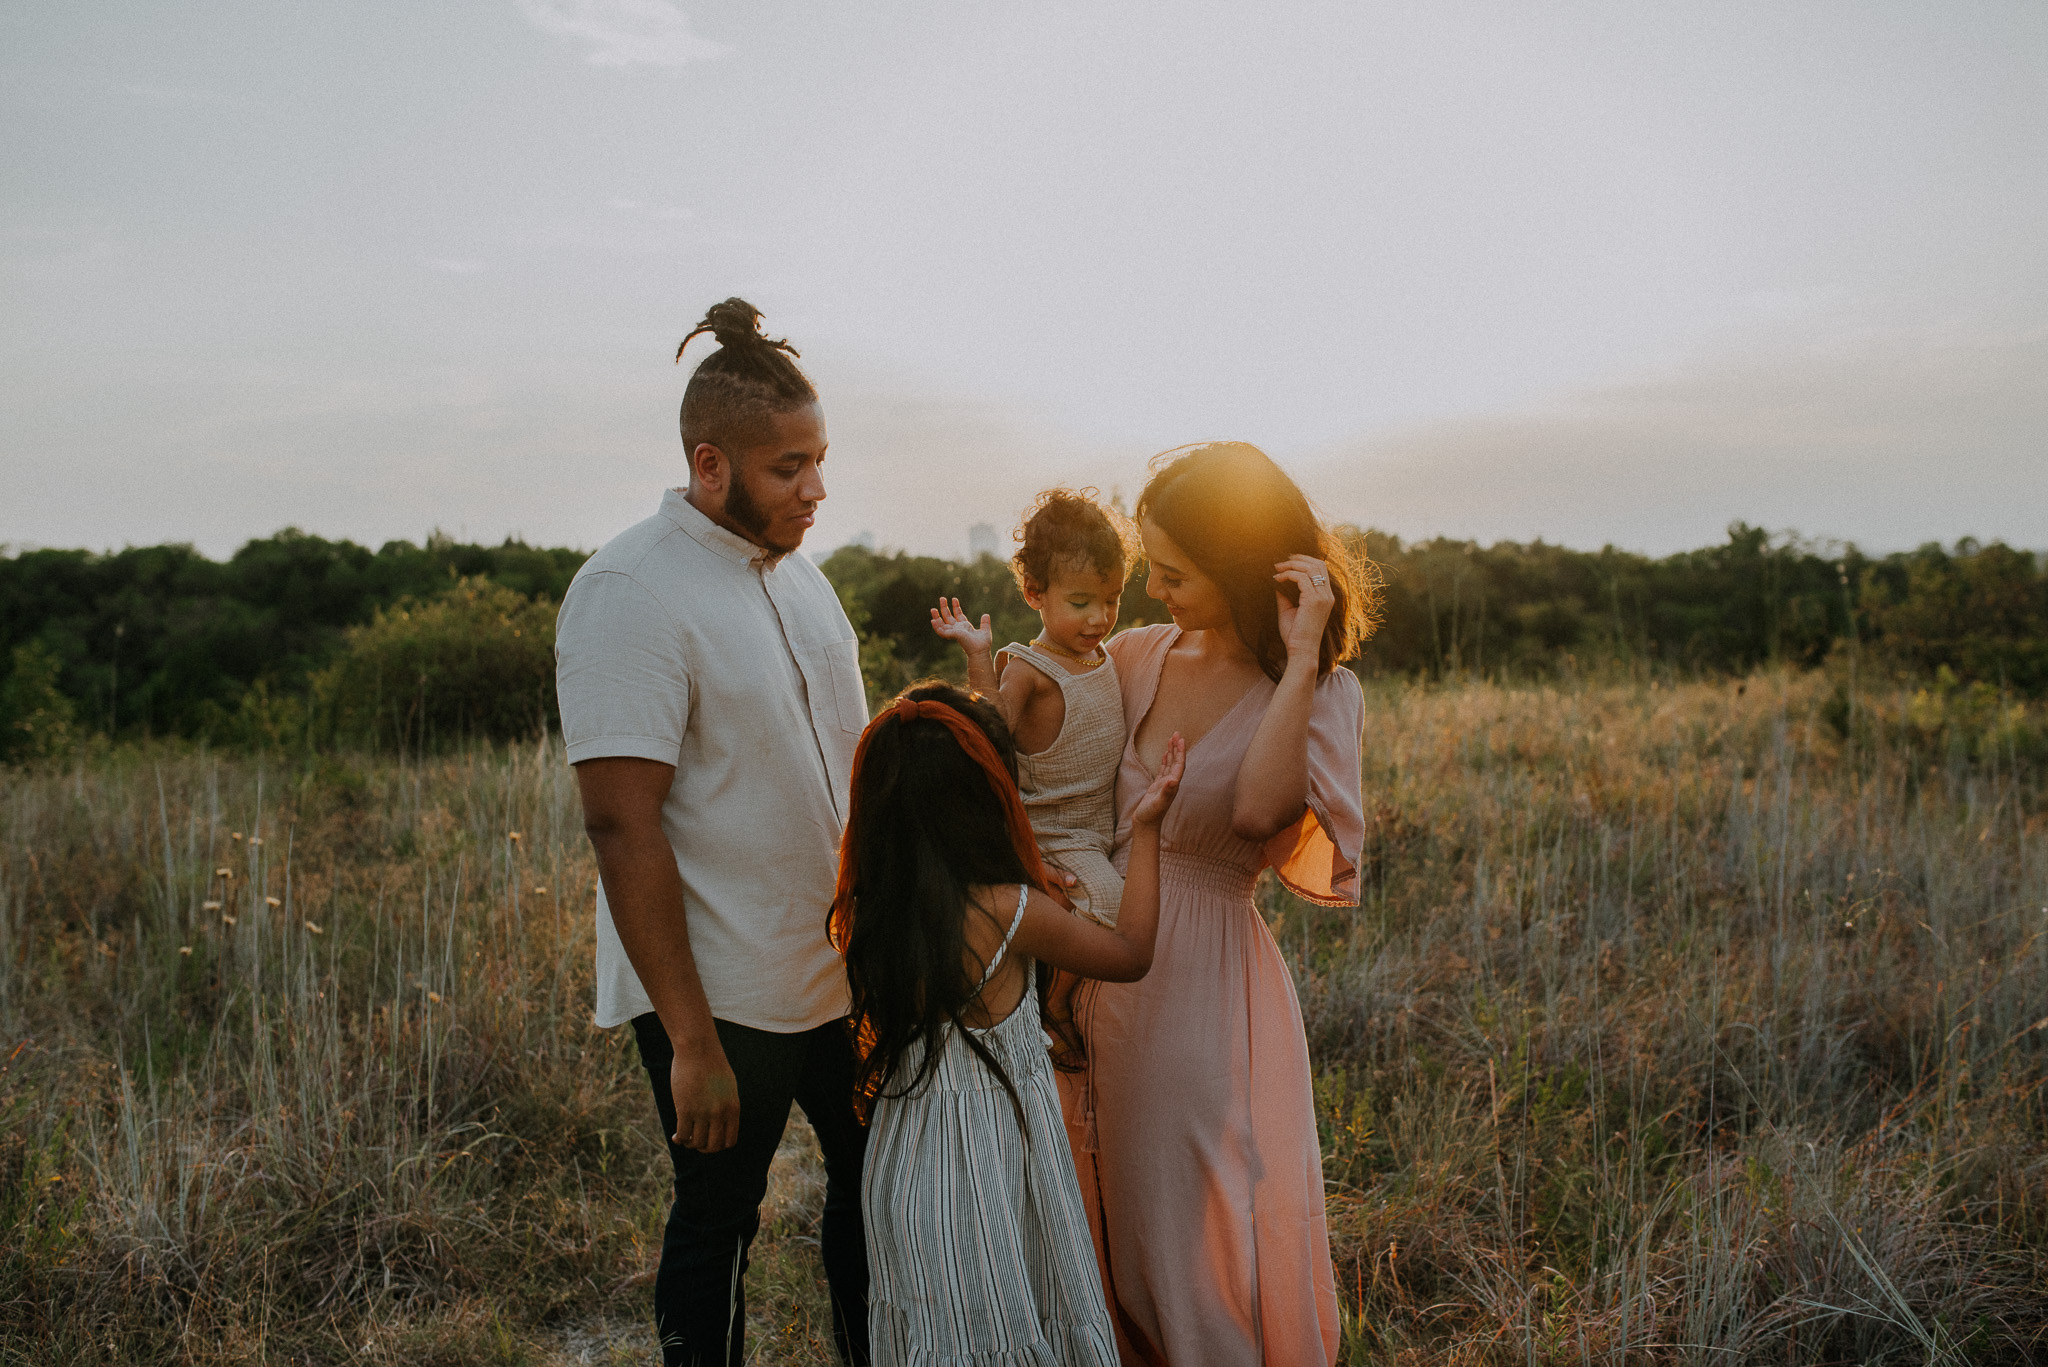 Jessi-marie-photography-dallas-fort-worth-texas-family-photographer-tandy-hills-natural-area-30